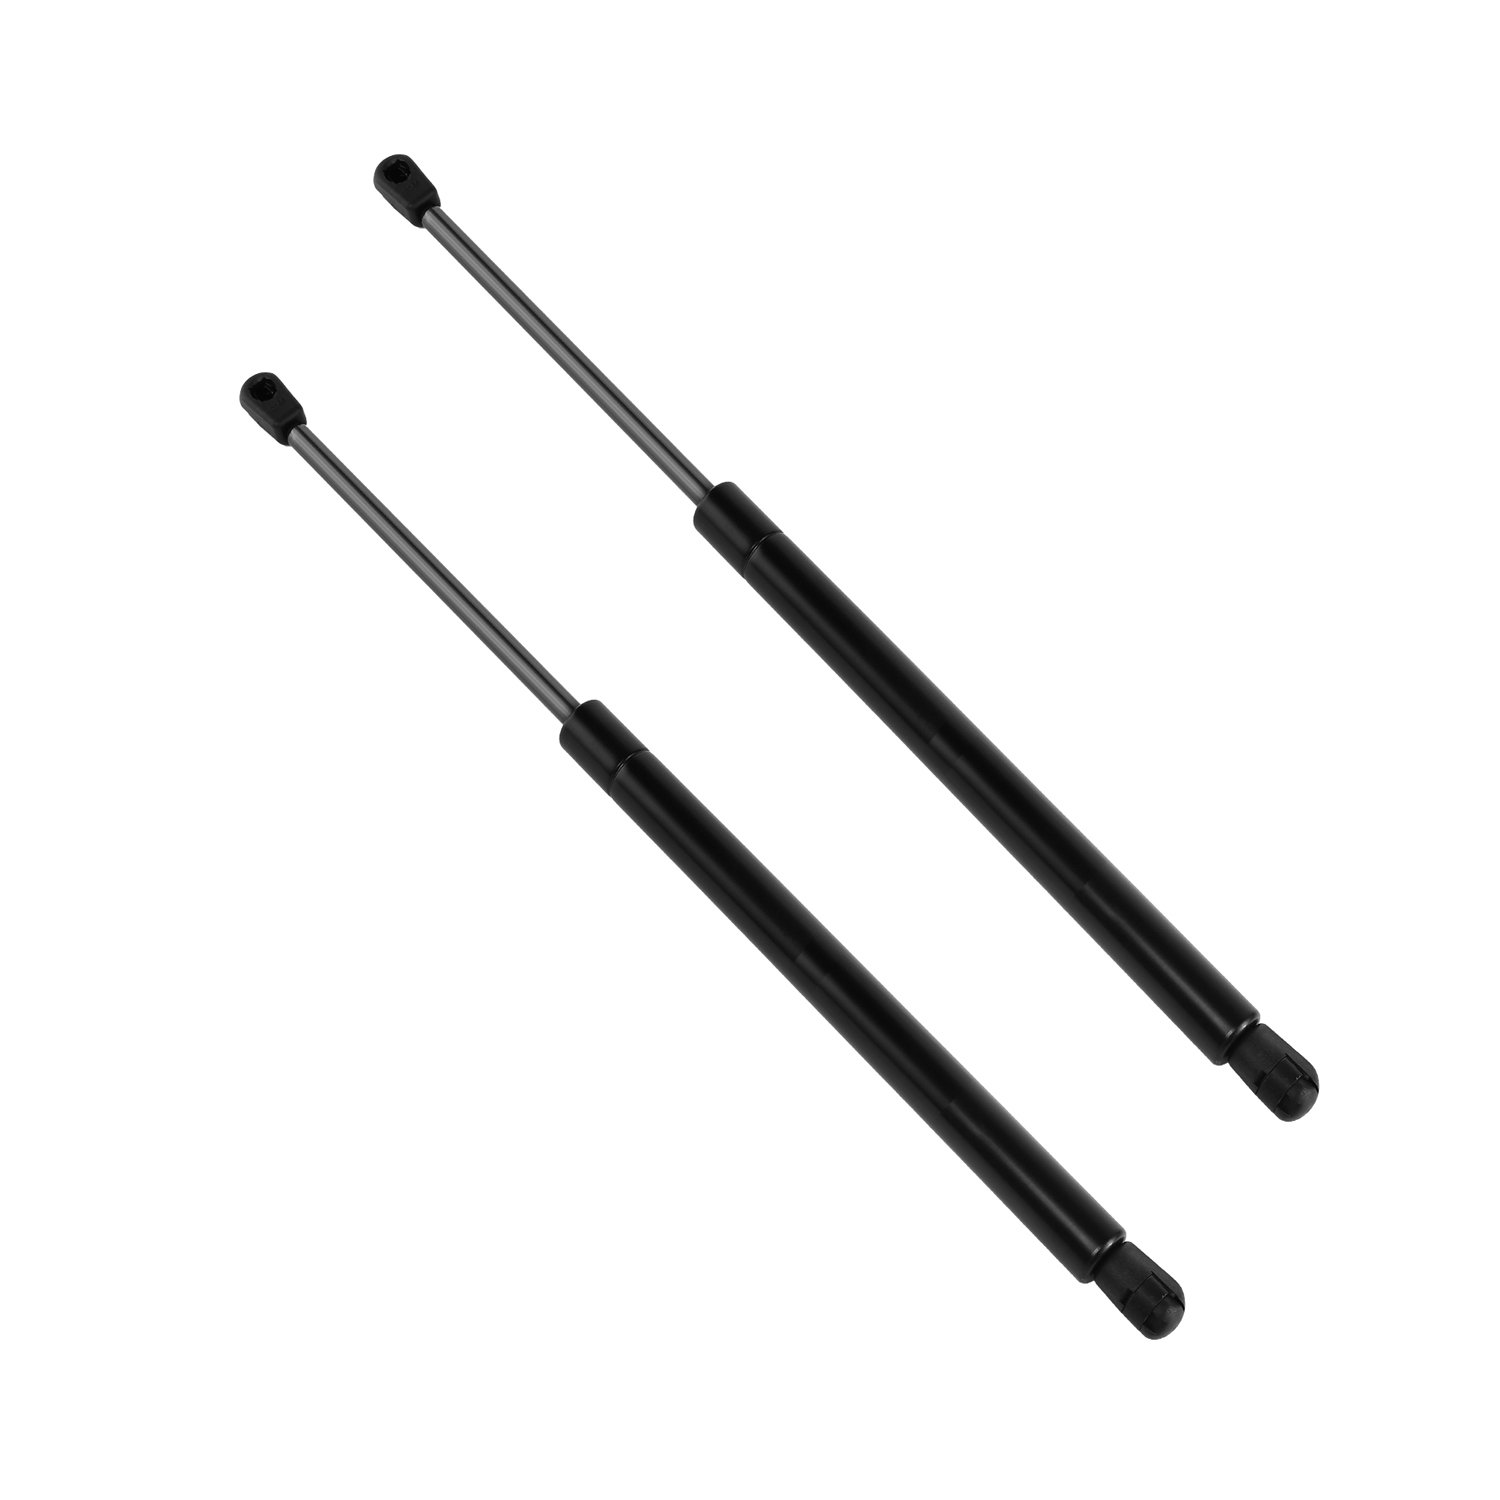 Pack of 2 Front Hood Lift Supports Struts Shocks Gas Springs 6351 for 2004-2008 Acura TL